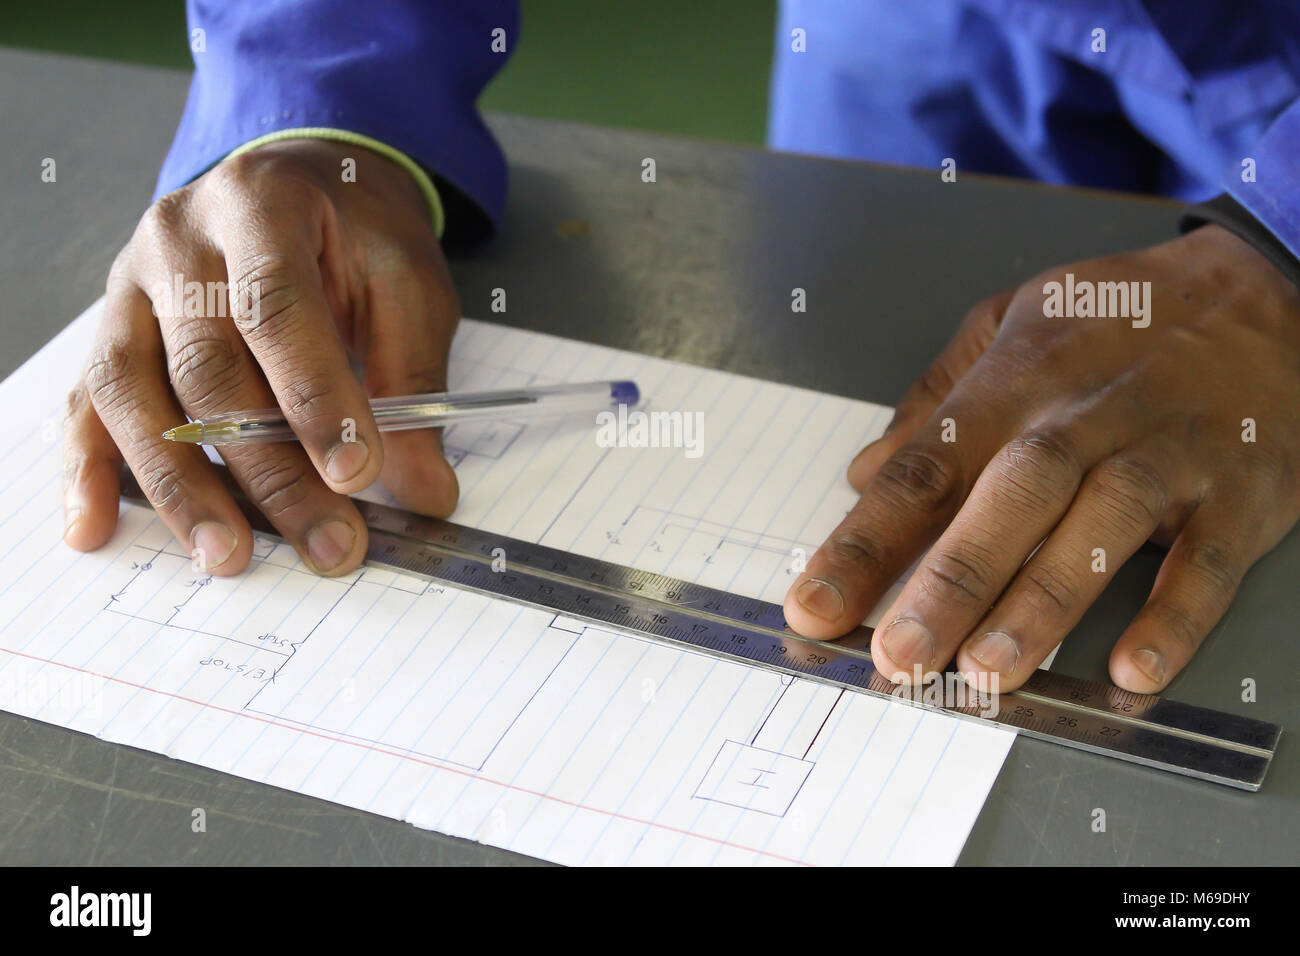 Electrical Drawing Stock Photos Images Draw Diagram African Mans Hands Practicing To At Trade School Image